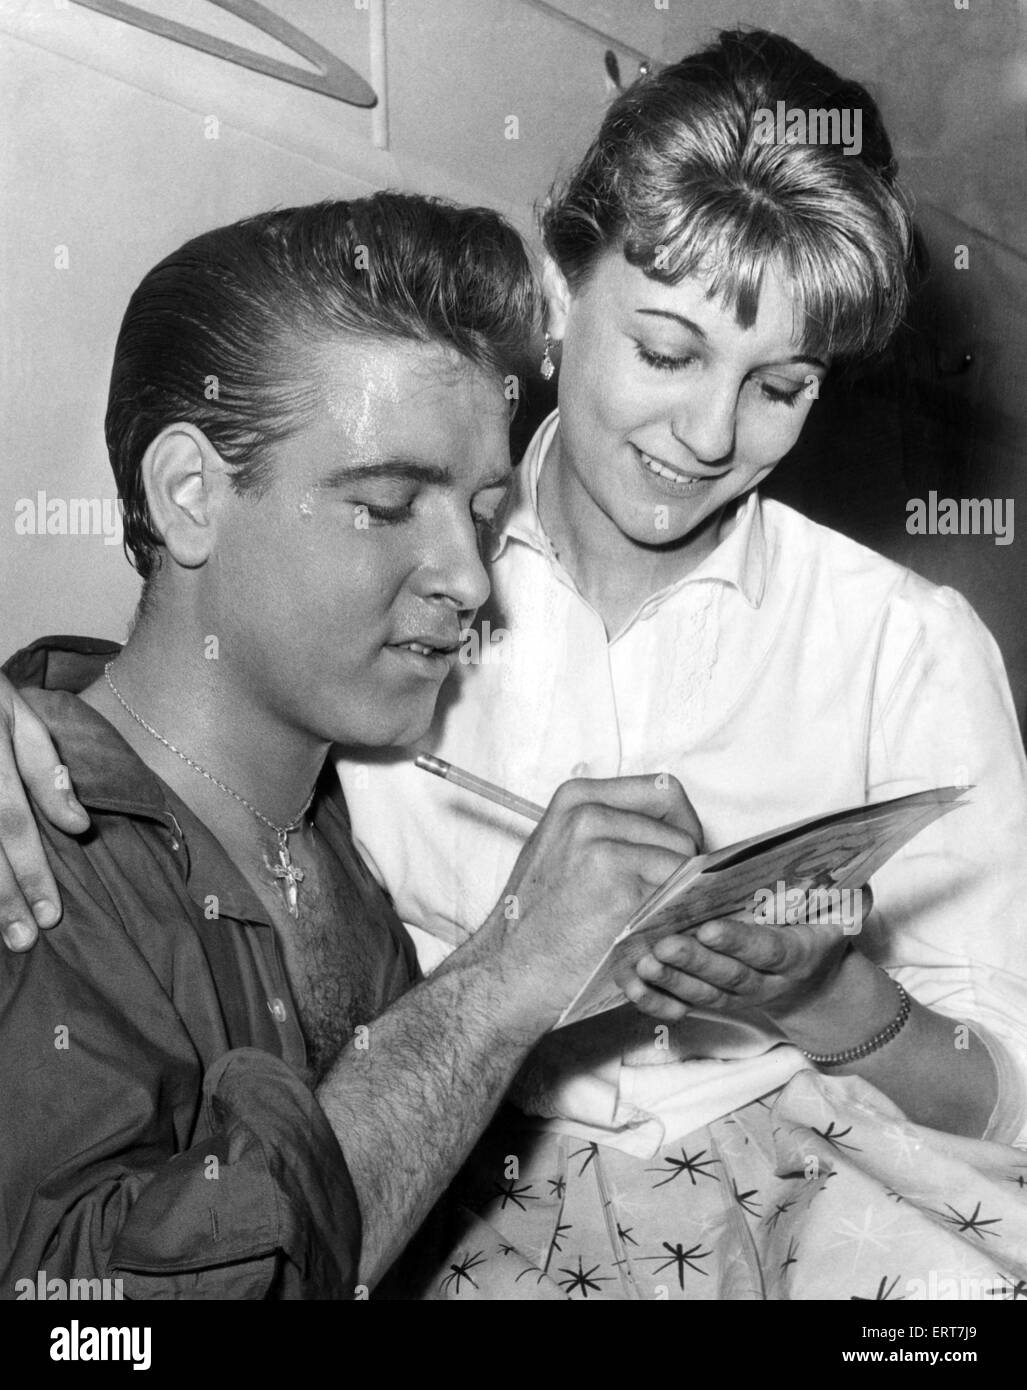 Eddie Cochran, Singer, signs autograph for fan Ann Berwick from Hay Mills, Birmingham, after concert at the Hippodrome, - Stock Image